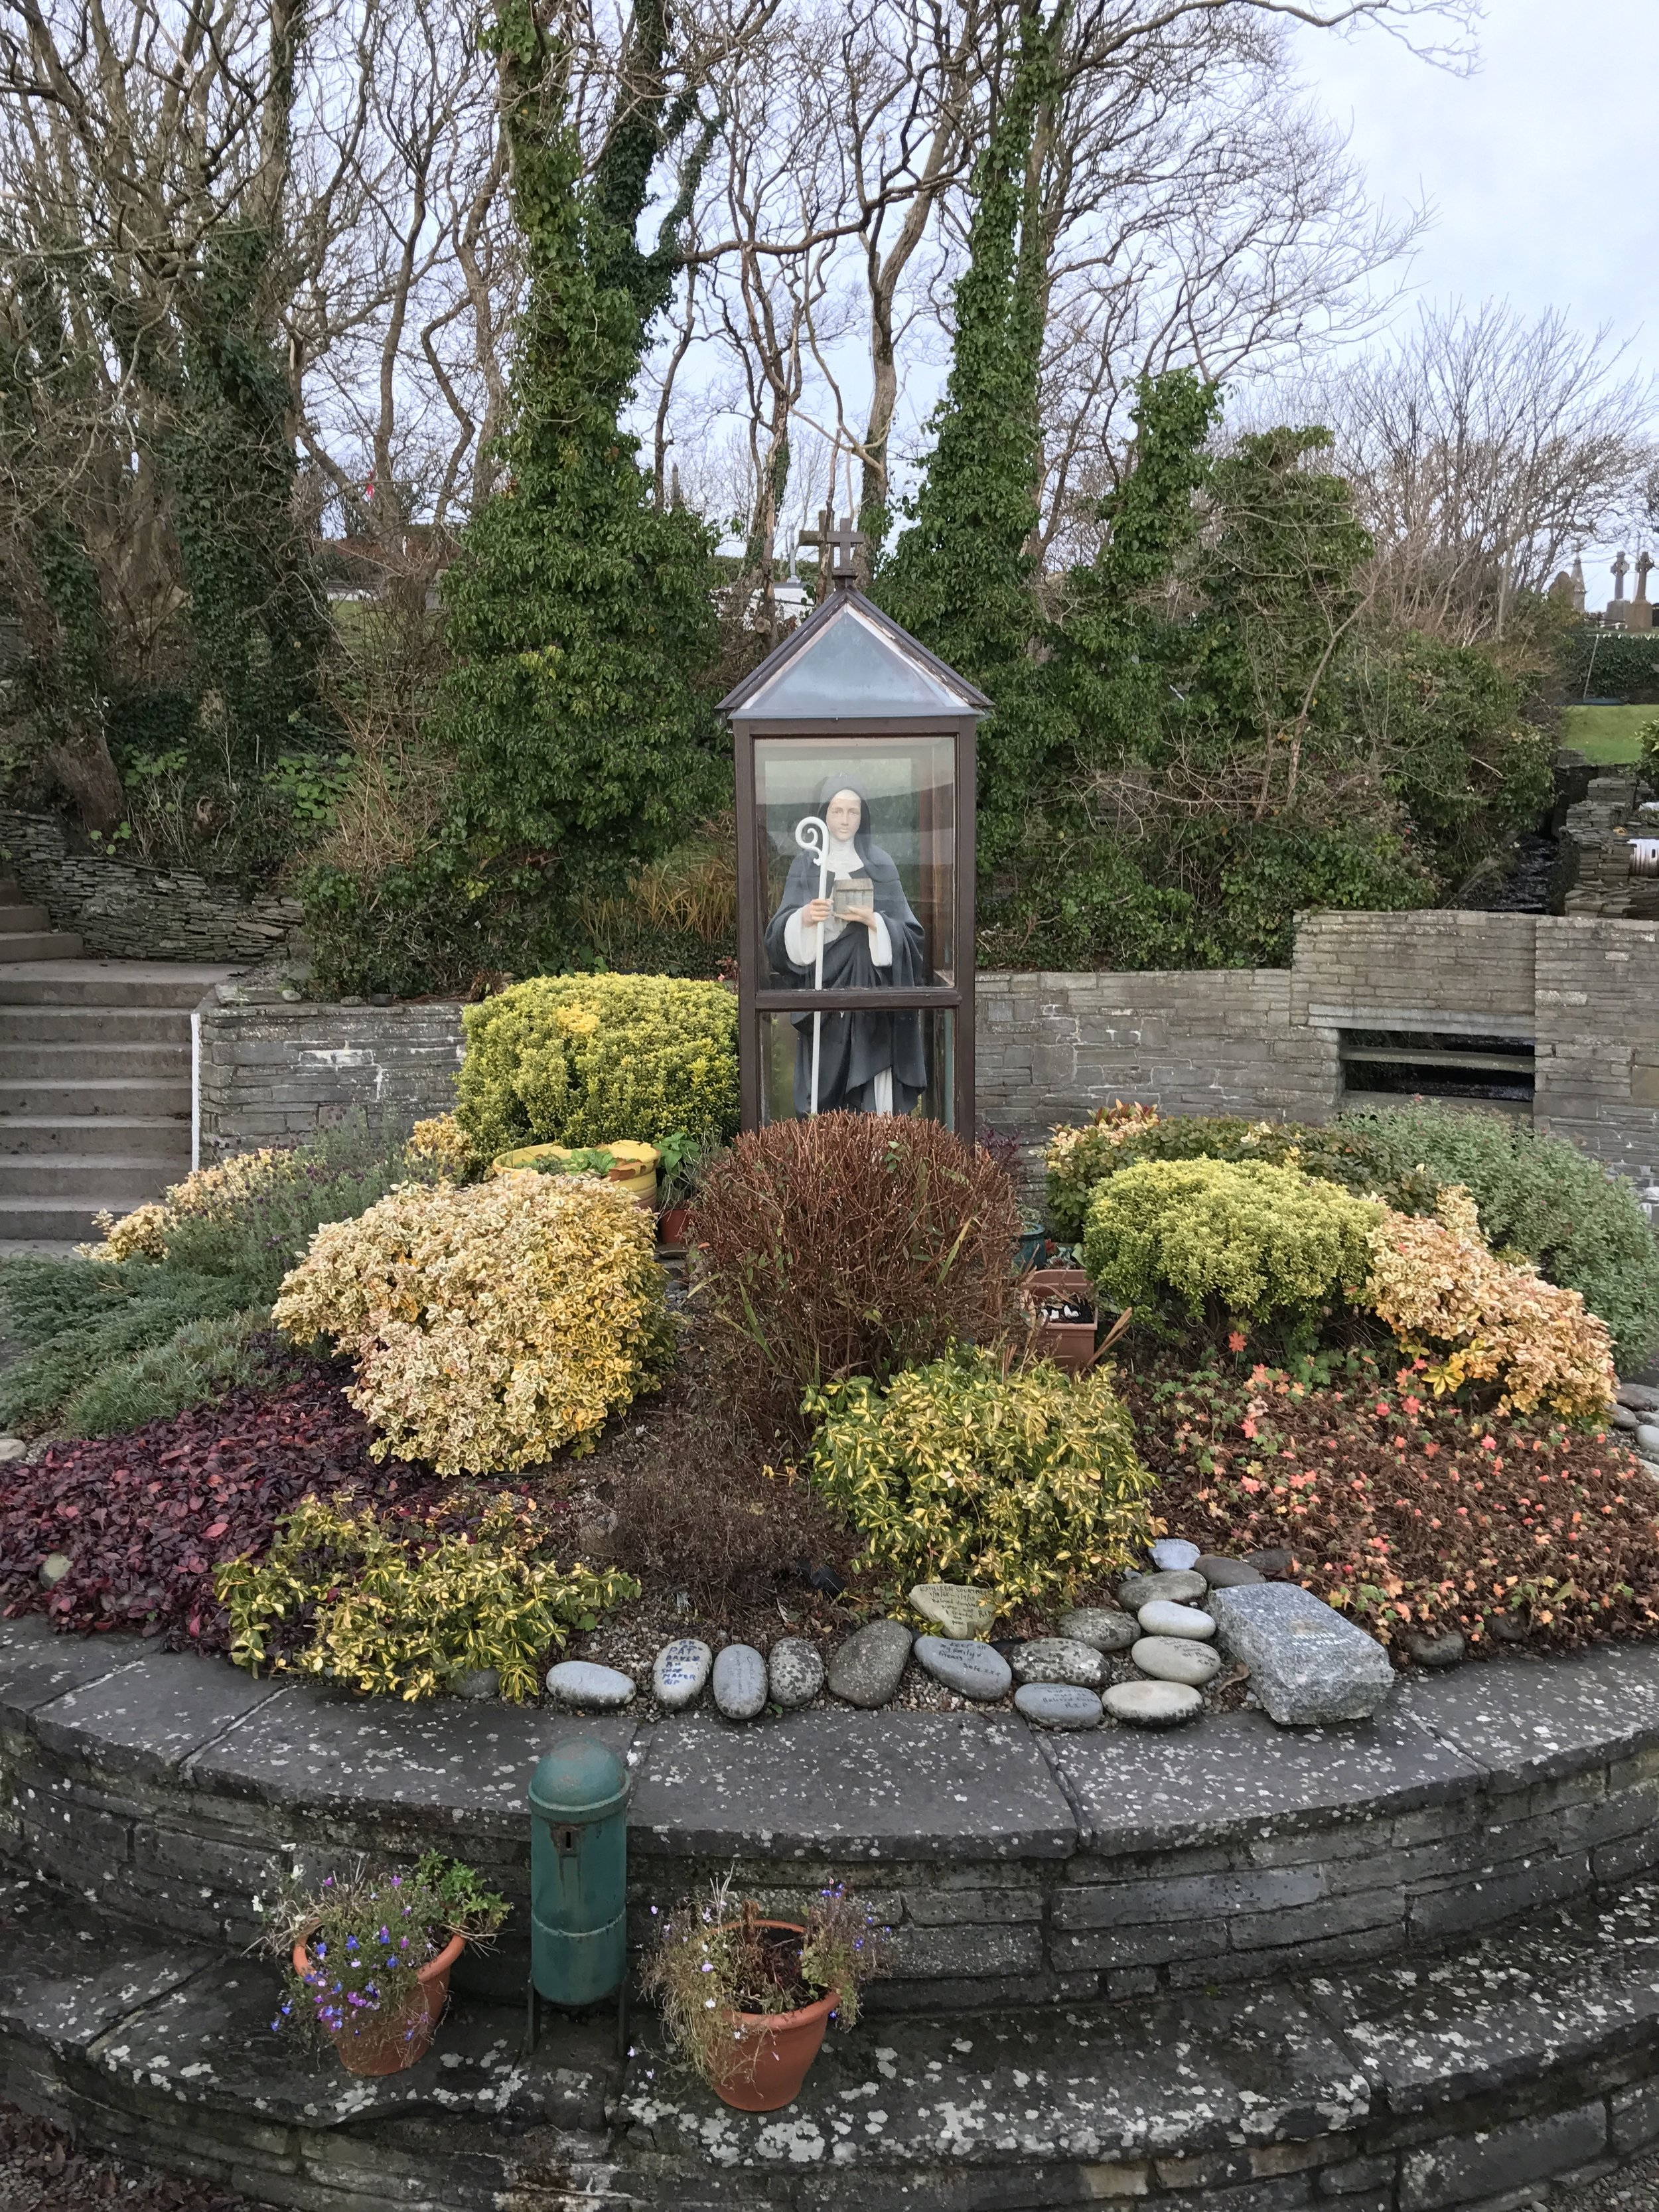 St. Brigid's shrine and well are a long standing holy place in both the pre and post Christian tradition in Ireland.